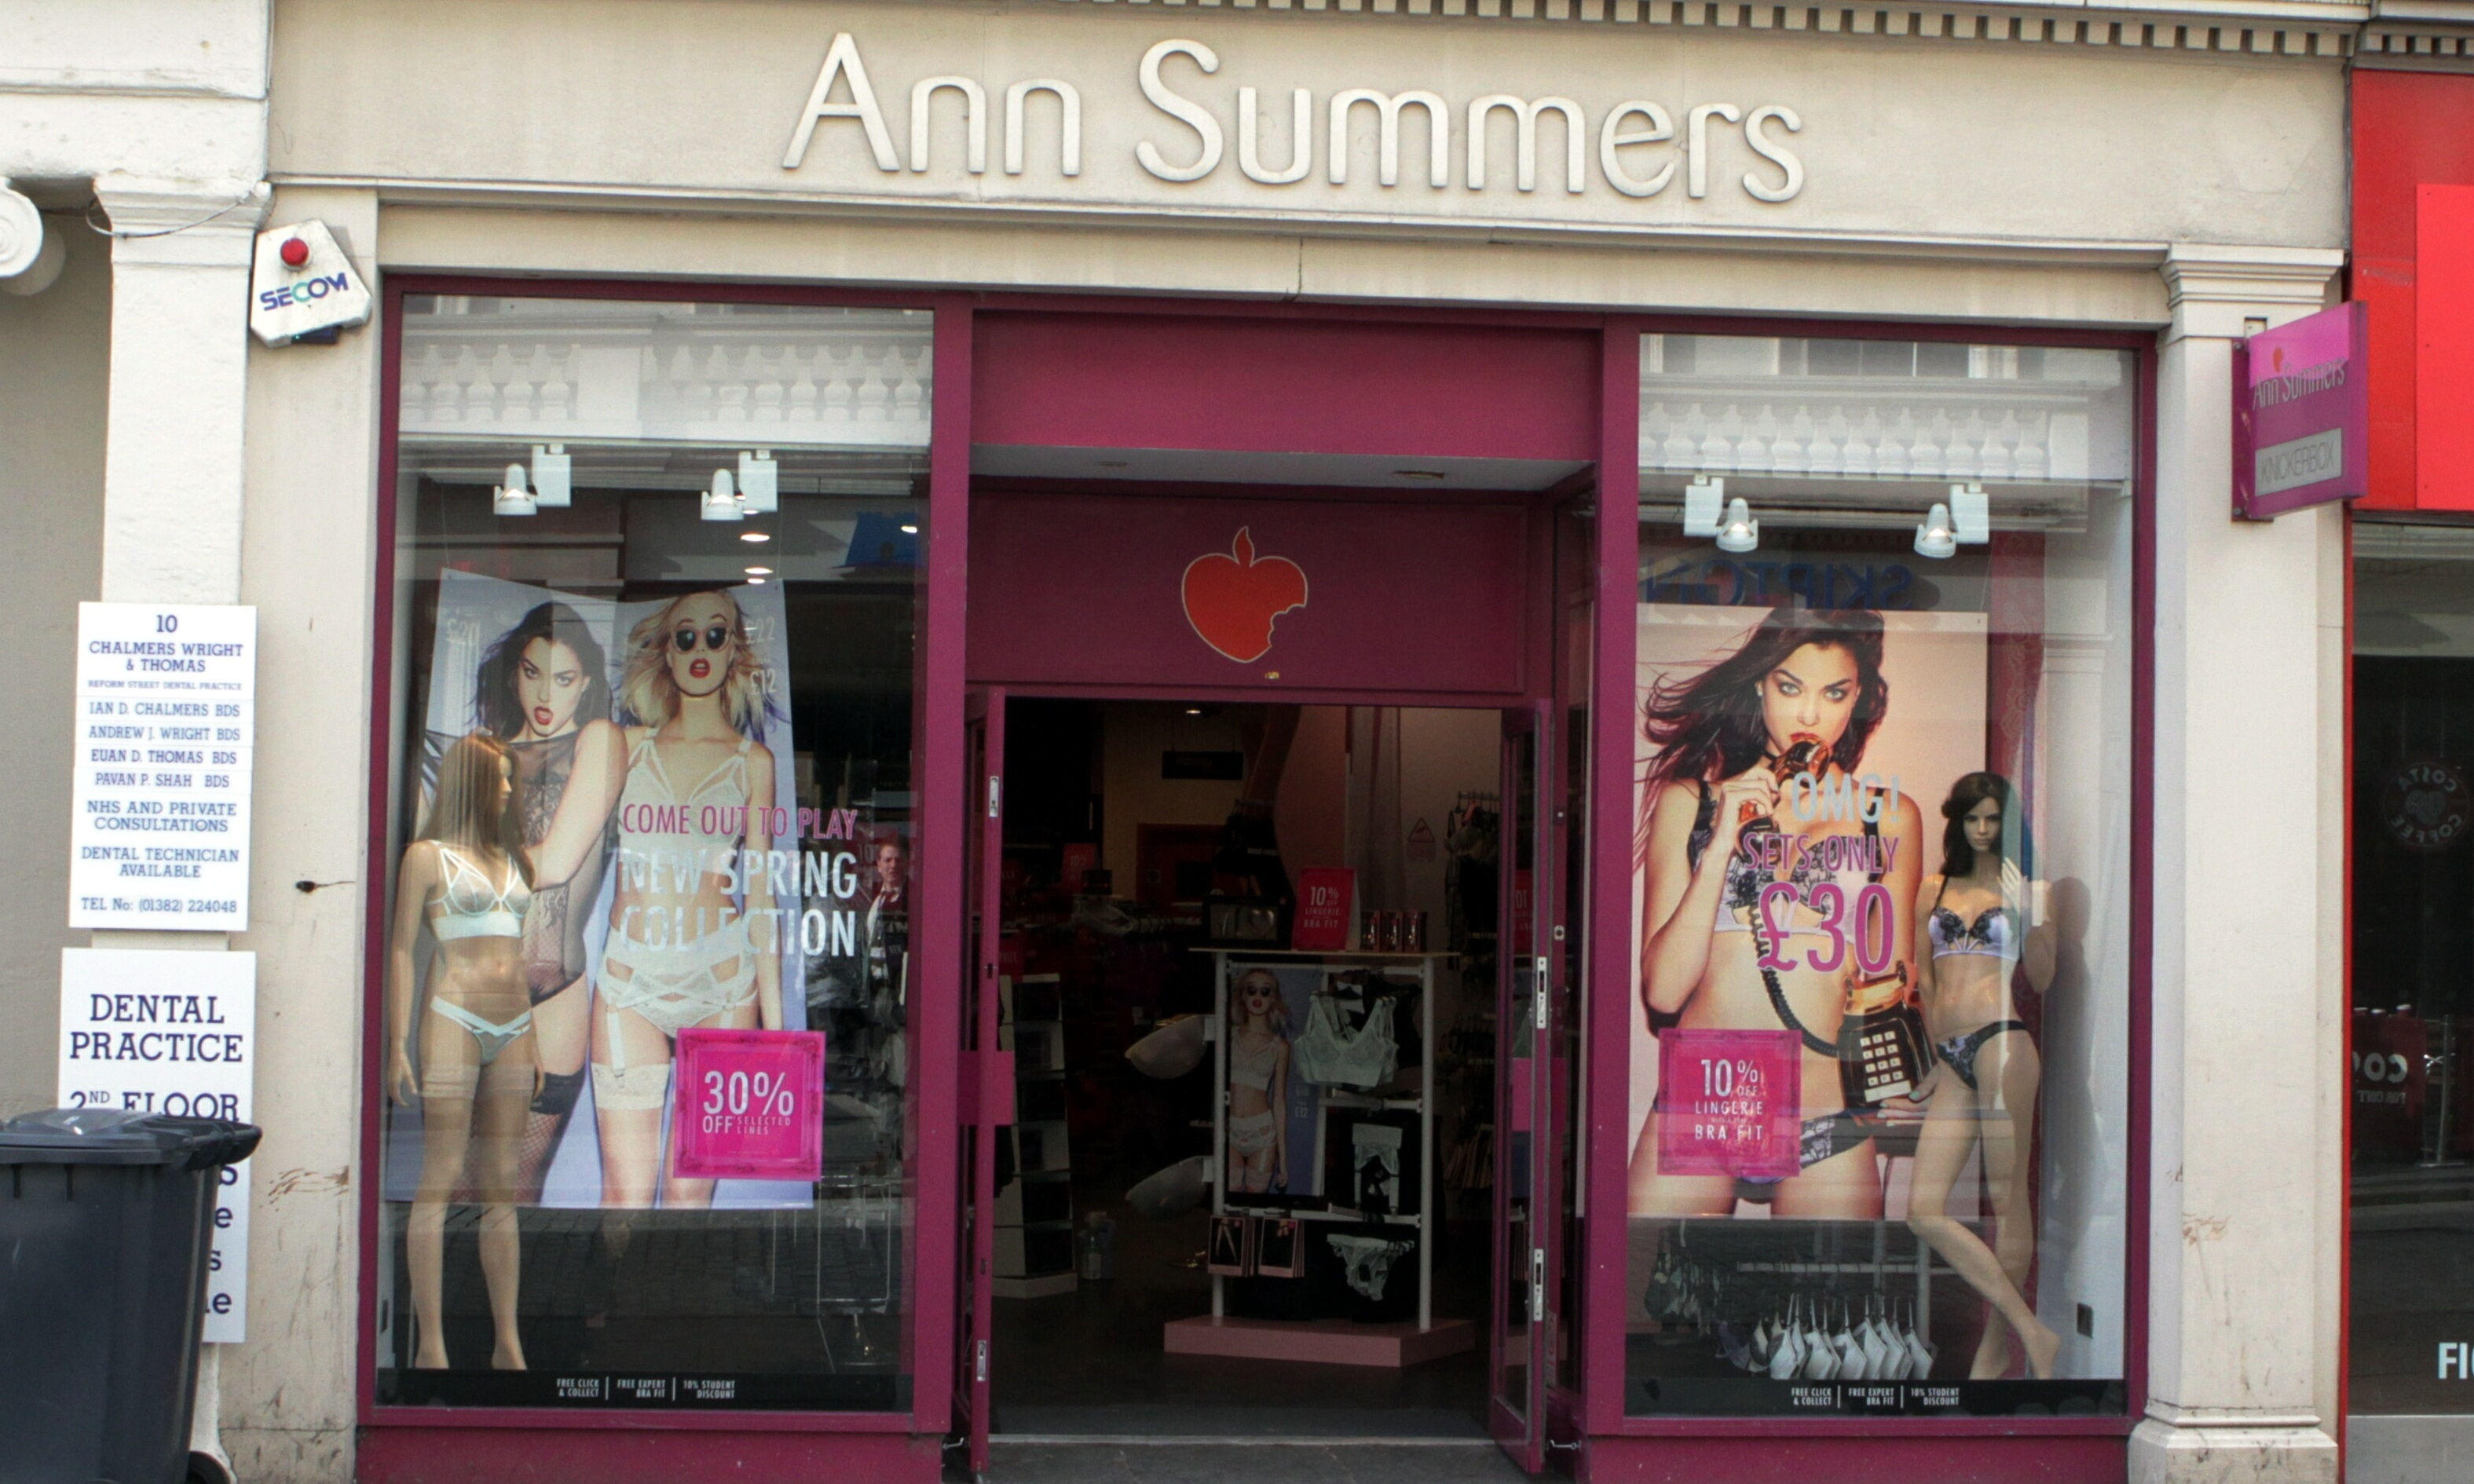 Ann Summers on Reform Street. (Stock image).